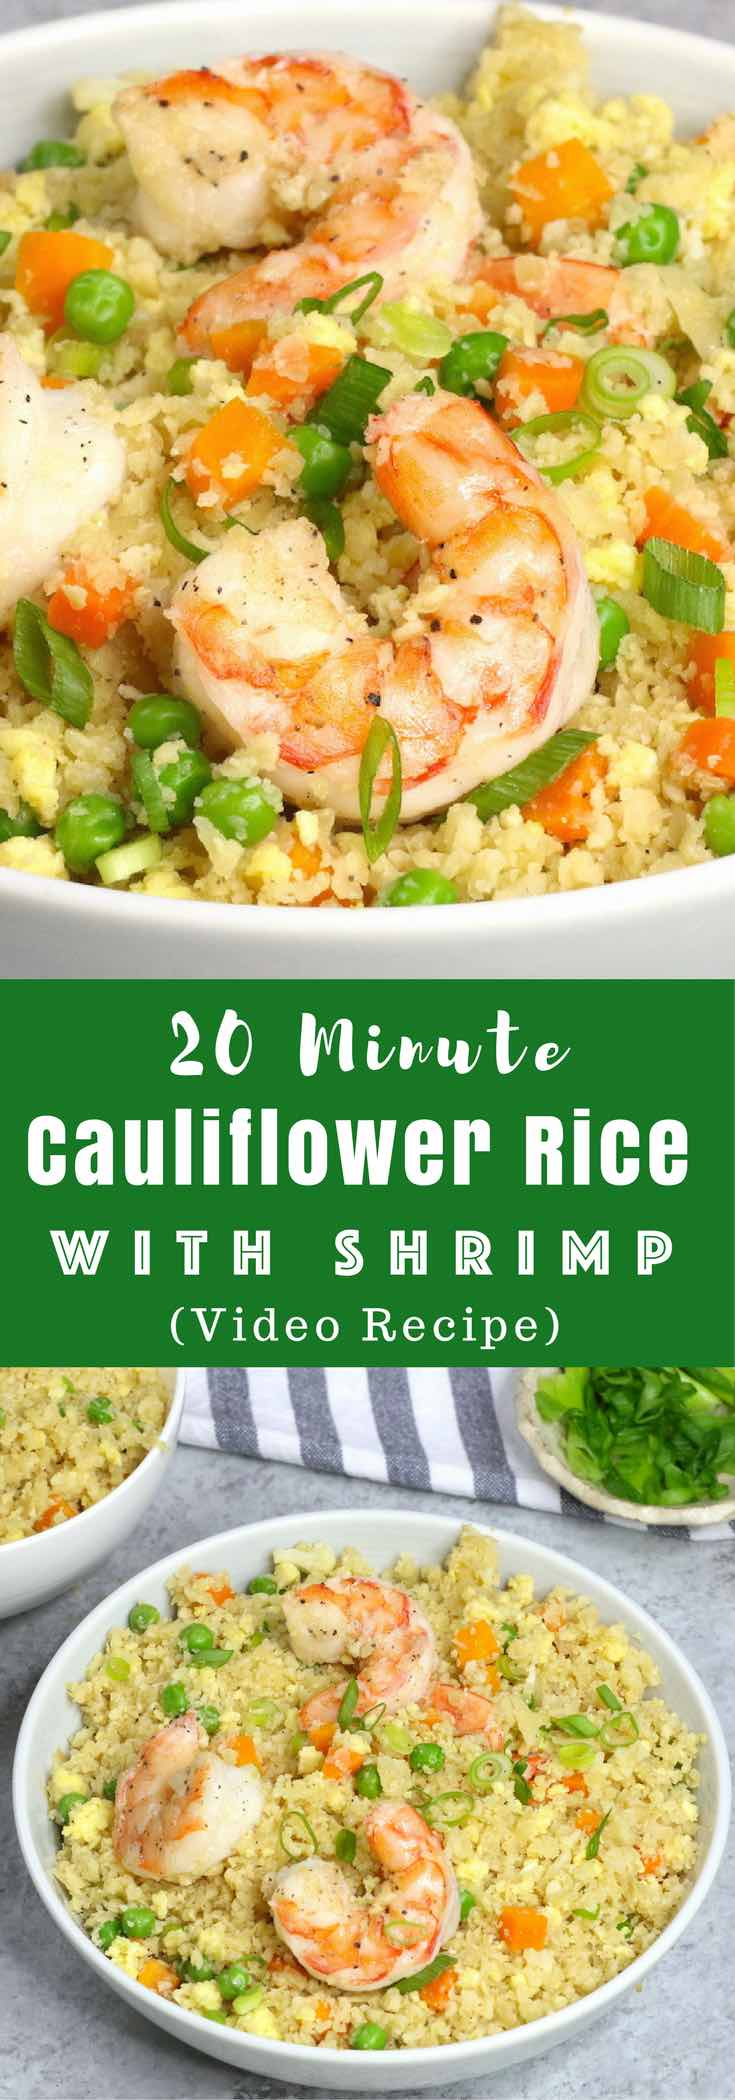 Shrimp Fried Cauliflower Rice - a delicious lunch or dinner idea that's low-carb, gluten-free, healthy and ready in 20 minutes. All you need are some simple ingredients: cauliflower, carrots, peas, shrimp, soy sauce, sesame oil and green onion. So good! #lowcarb #glutenfree Video recipe. tipbuzz.com